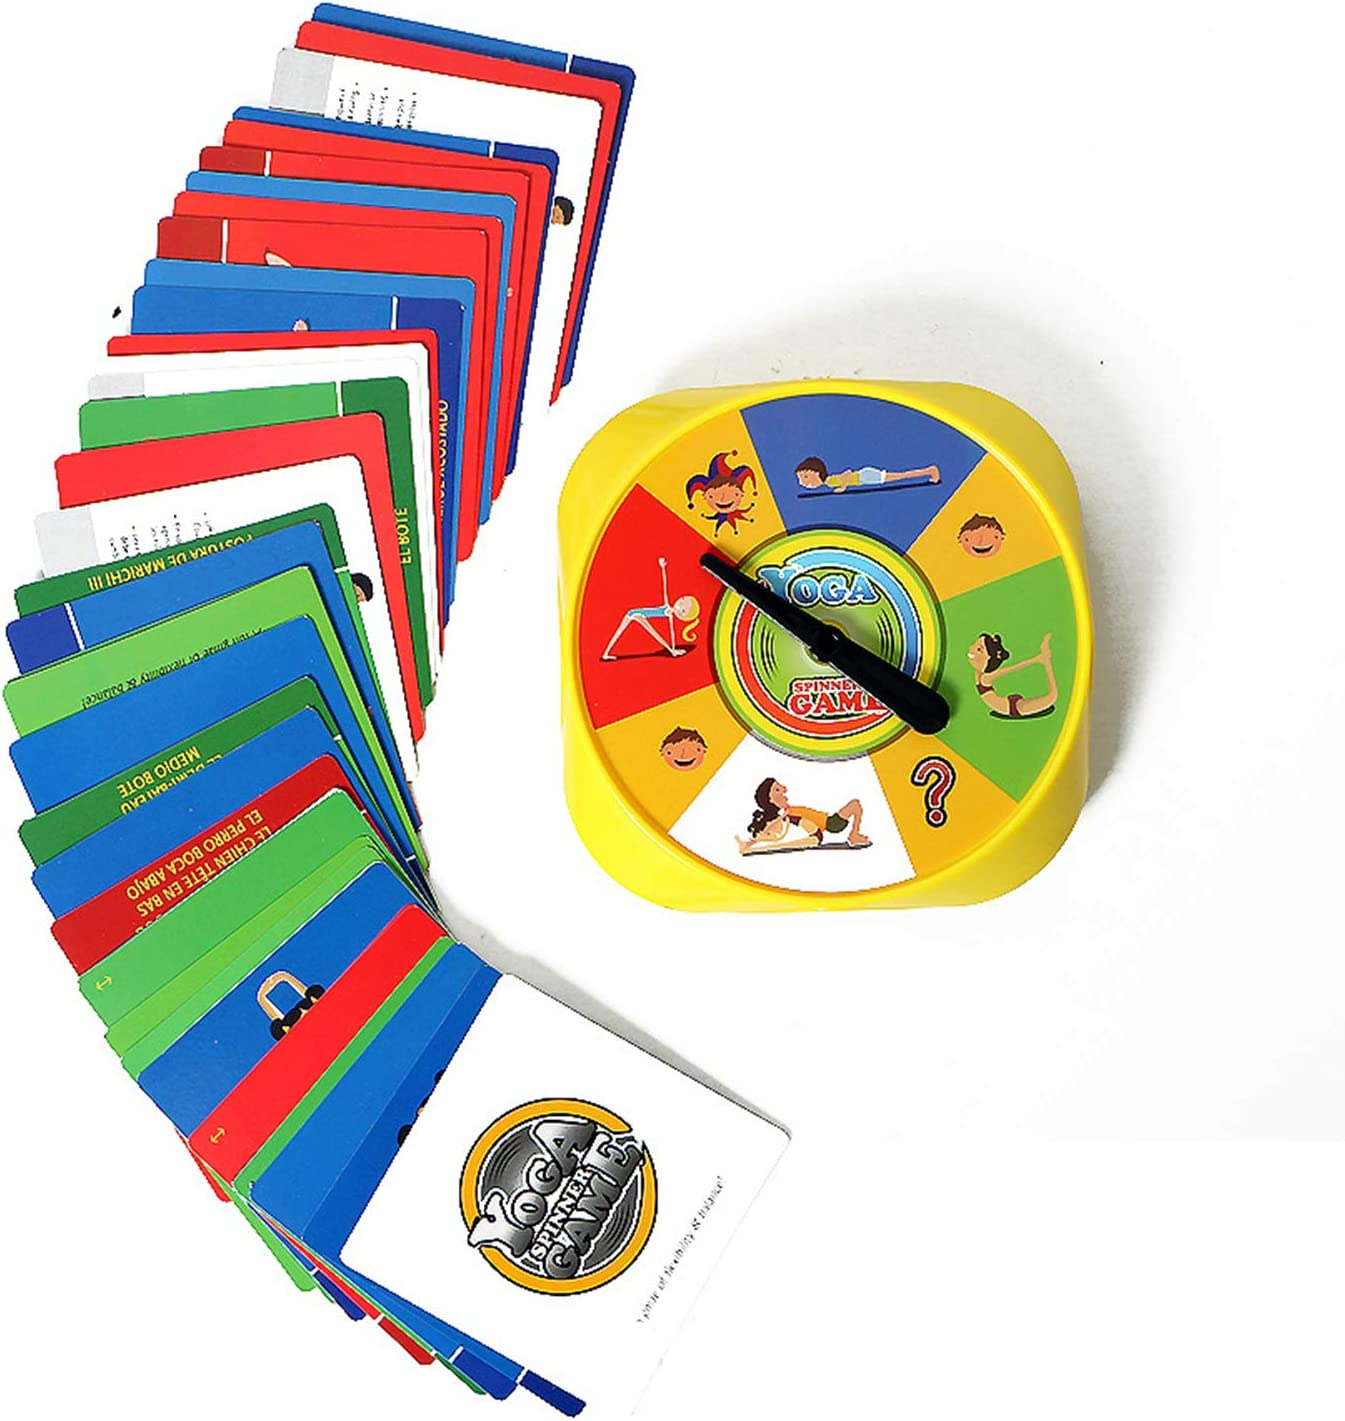 Amazon.com: Board Games Yoga Spinner Board Game for Kids ...